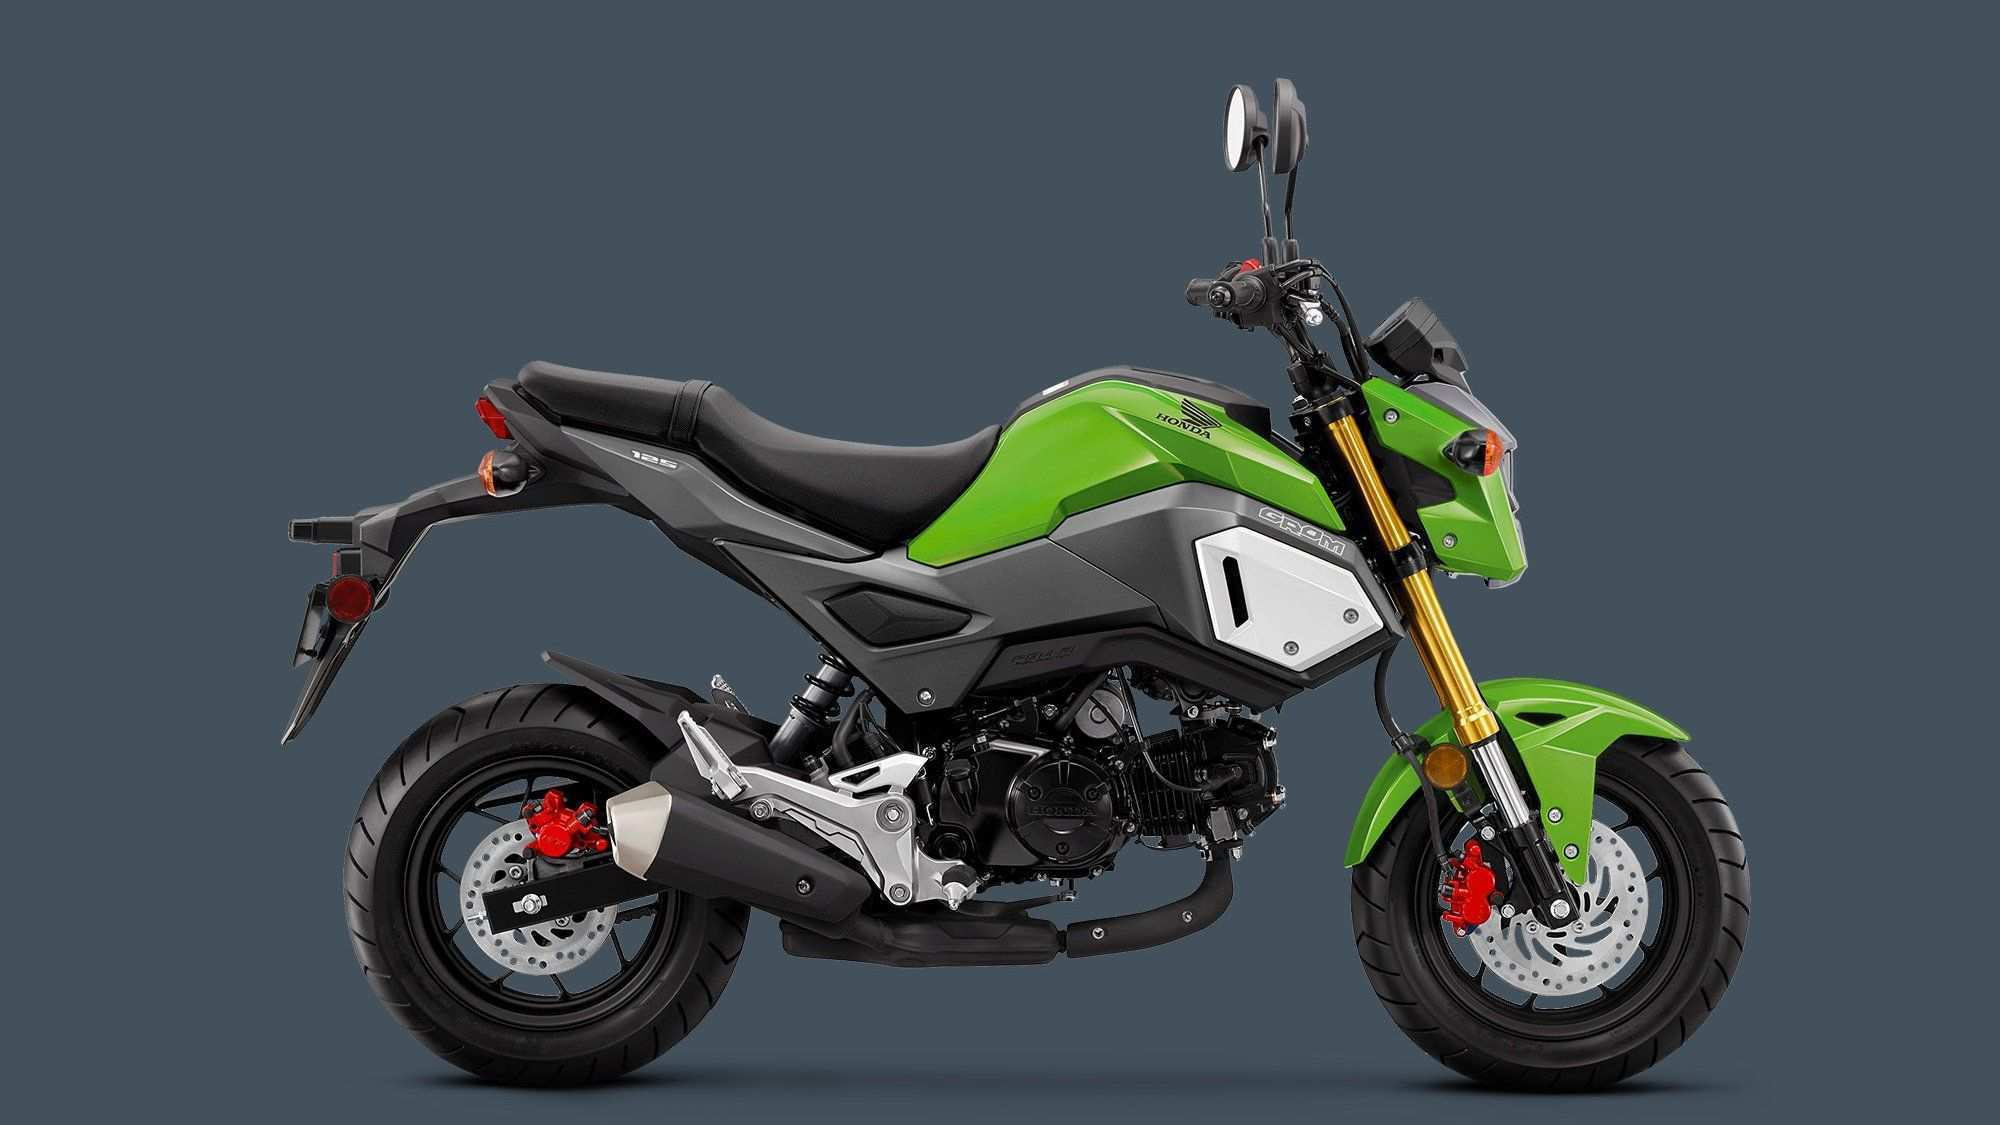 75 Concept of Best Honda Grom 2019 Release Date Spy Shoot Speed Test with Best Honda Grom 2019 Release Date Spy Shoot